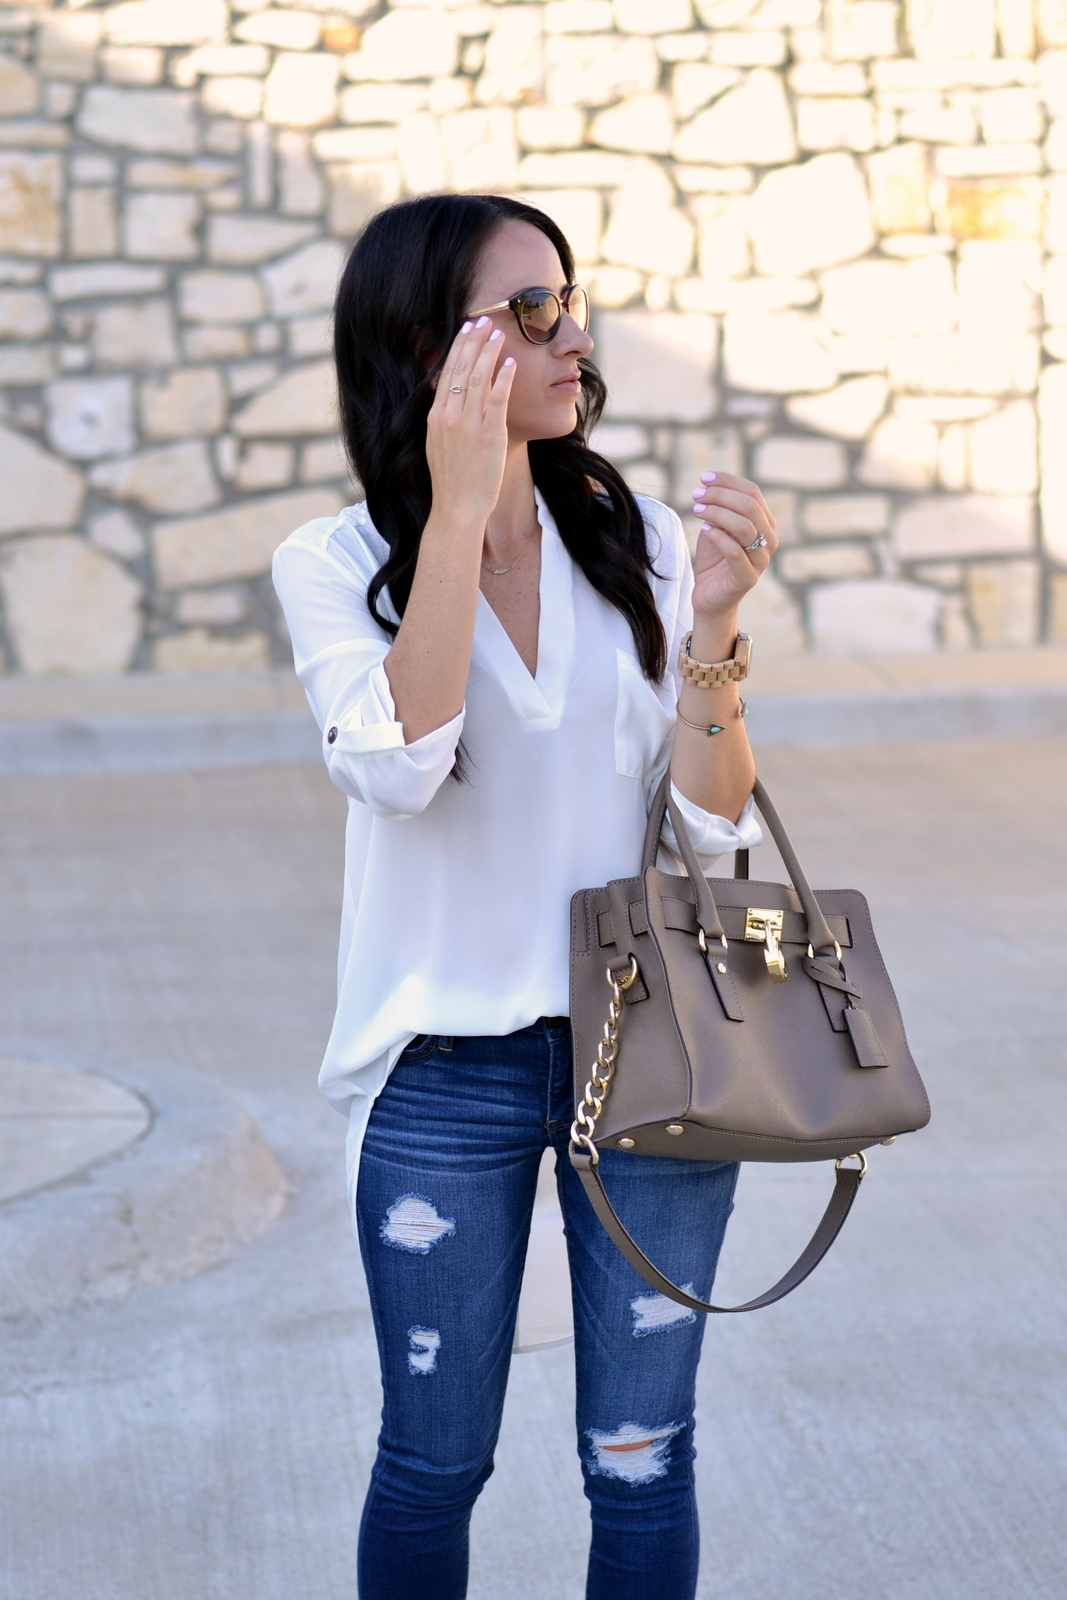 Casual Look with MK bag and distressed denim